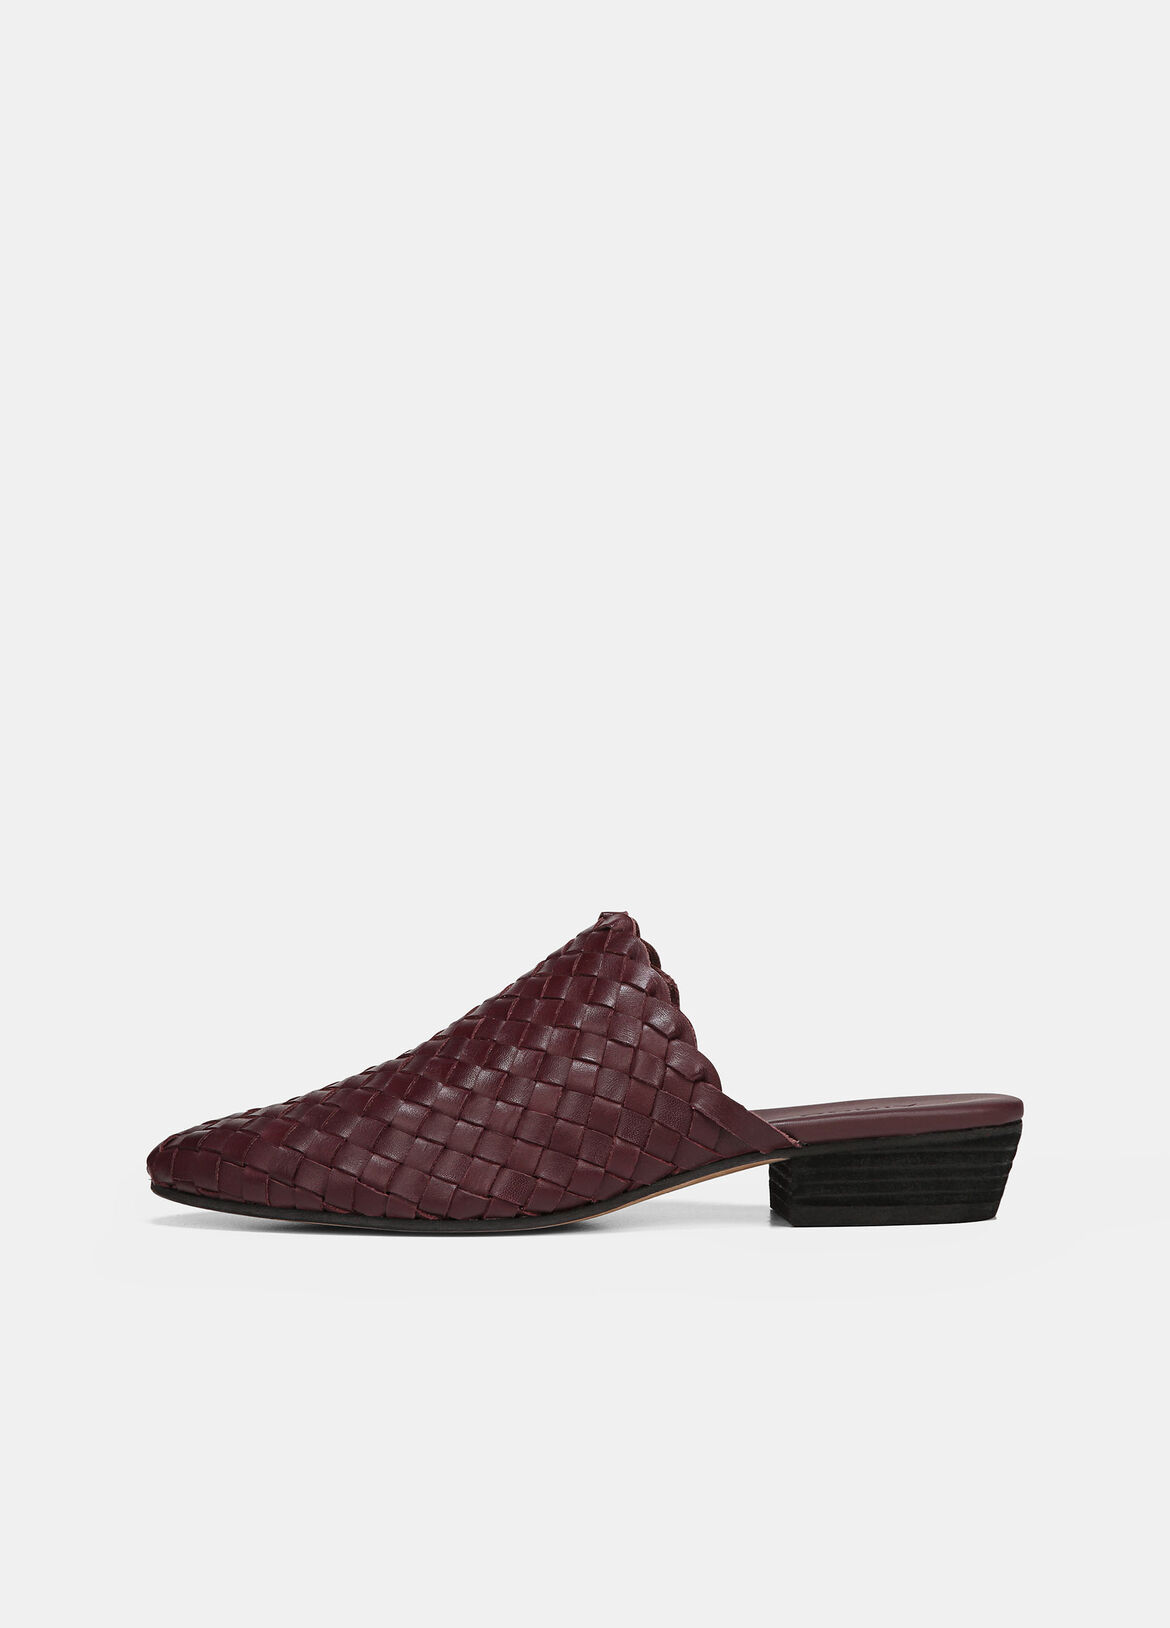 The Galena mules are made from woven strips of soft leather. Set on stacked heels, they have a round almond silhouette that's ideal for culottes or dresses.